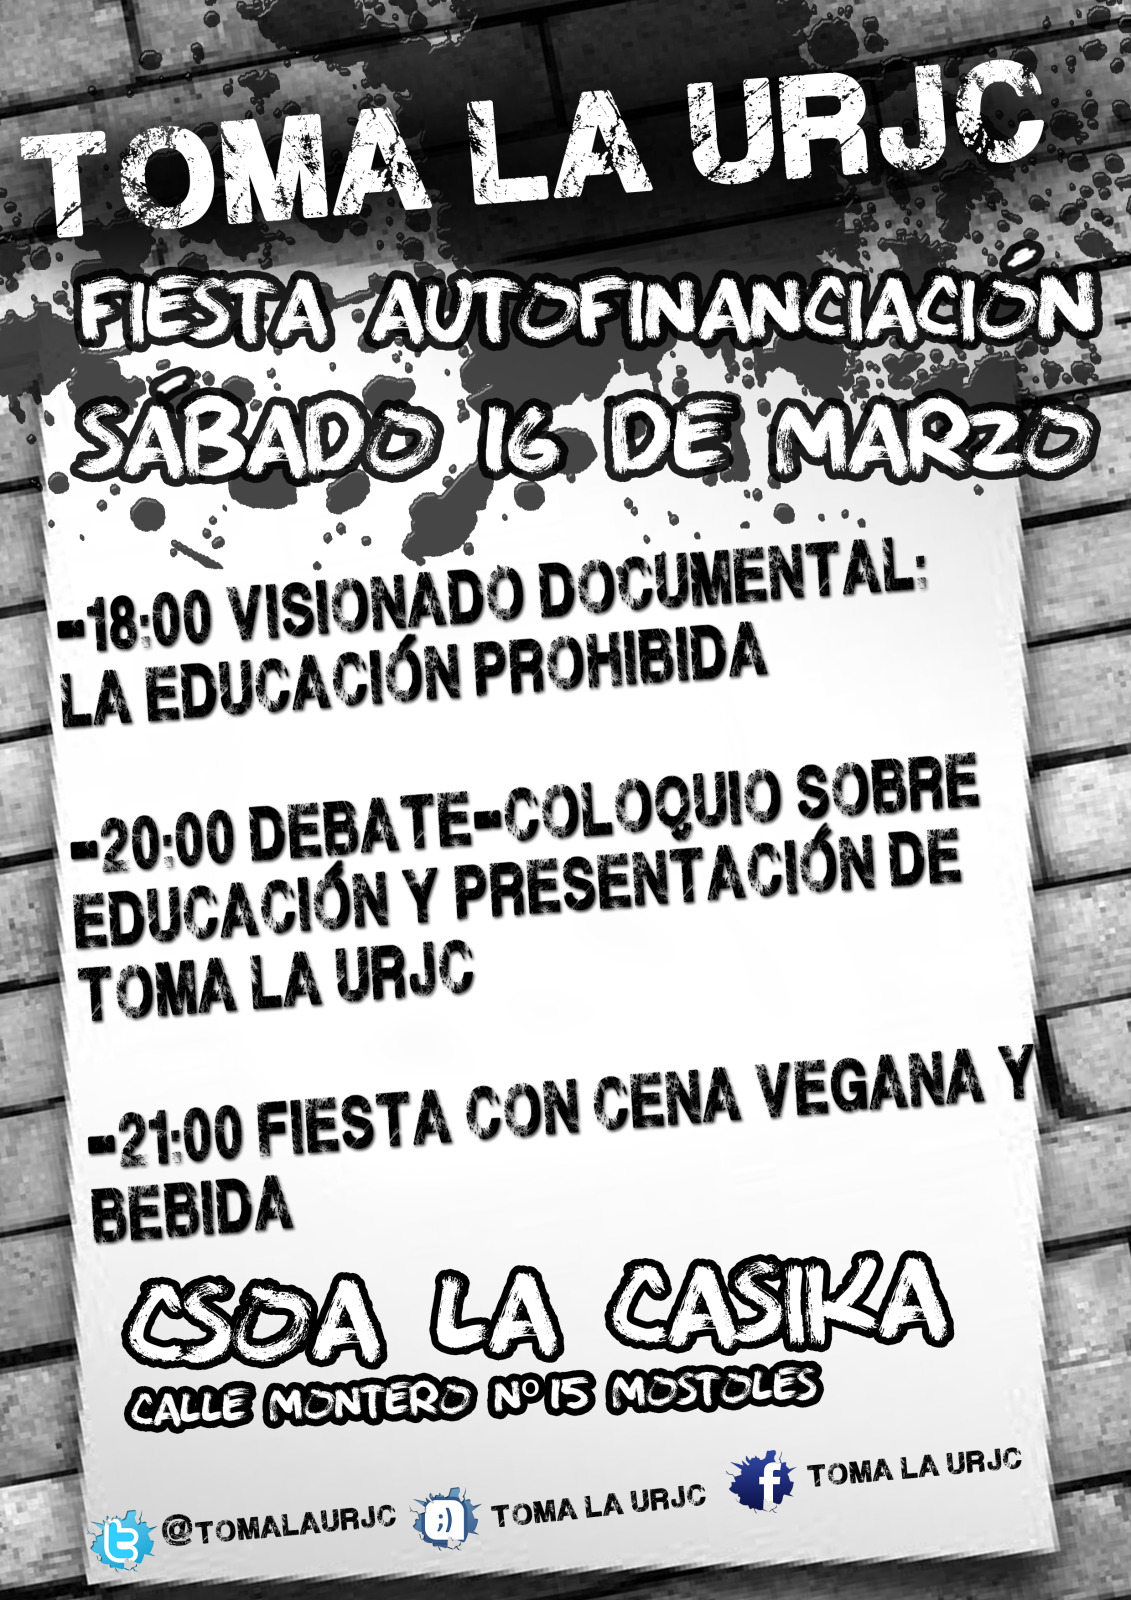 cartel Fiesta autofinanciaci&oacute;n toma la URJC - Sabado 16 marzo en la Casika M&oacute;stoles